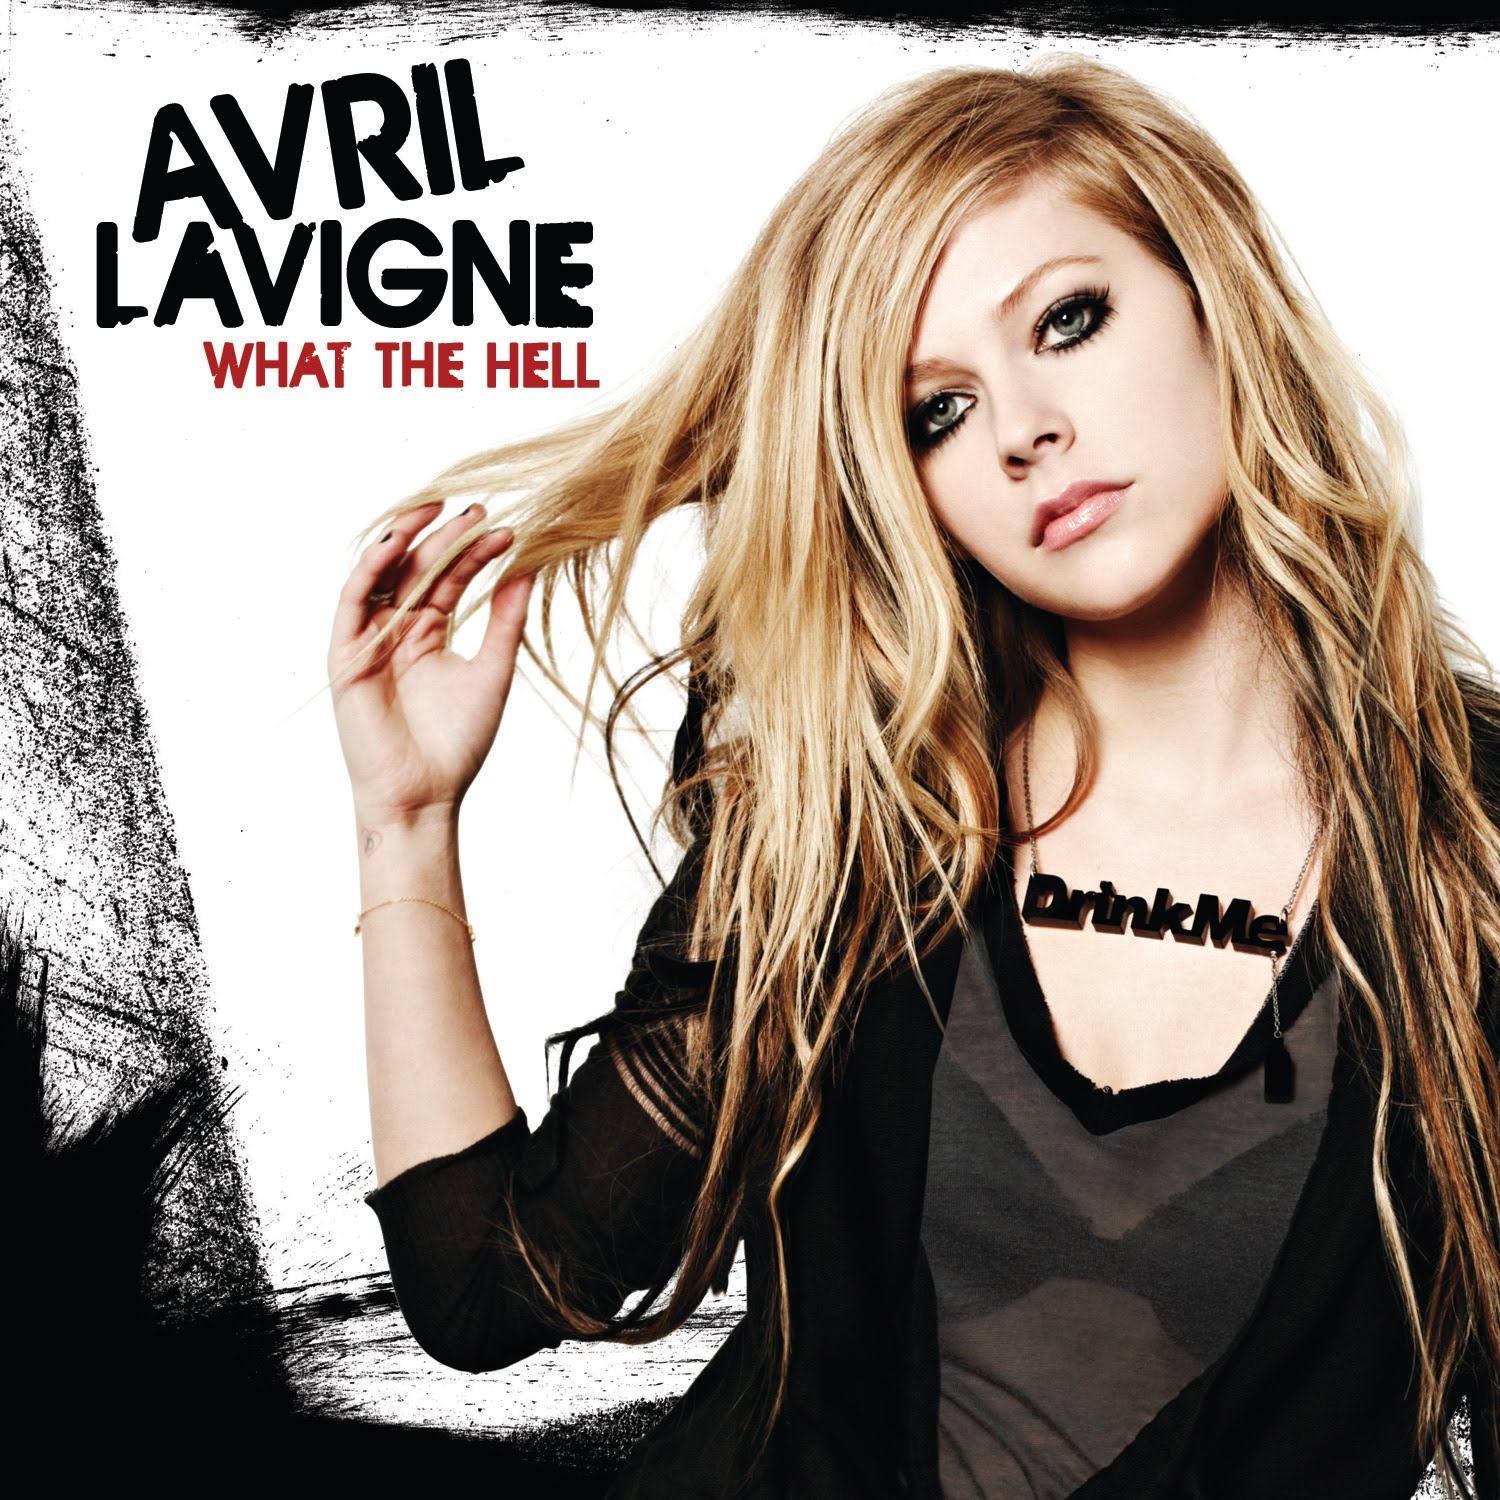 http://2.bp.blogspot.com/_AtkXHr34hPo/TThxR25F1hI/AAAAAAAAALg/Zgg6EJau00s/s1600/Avril+Lavigne+-+Cover+-+What+The+Hell.jpg